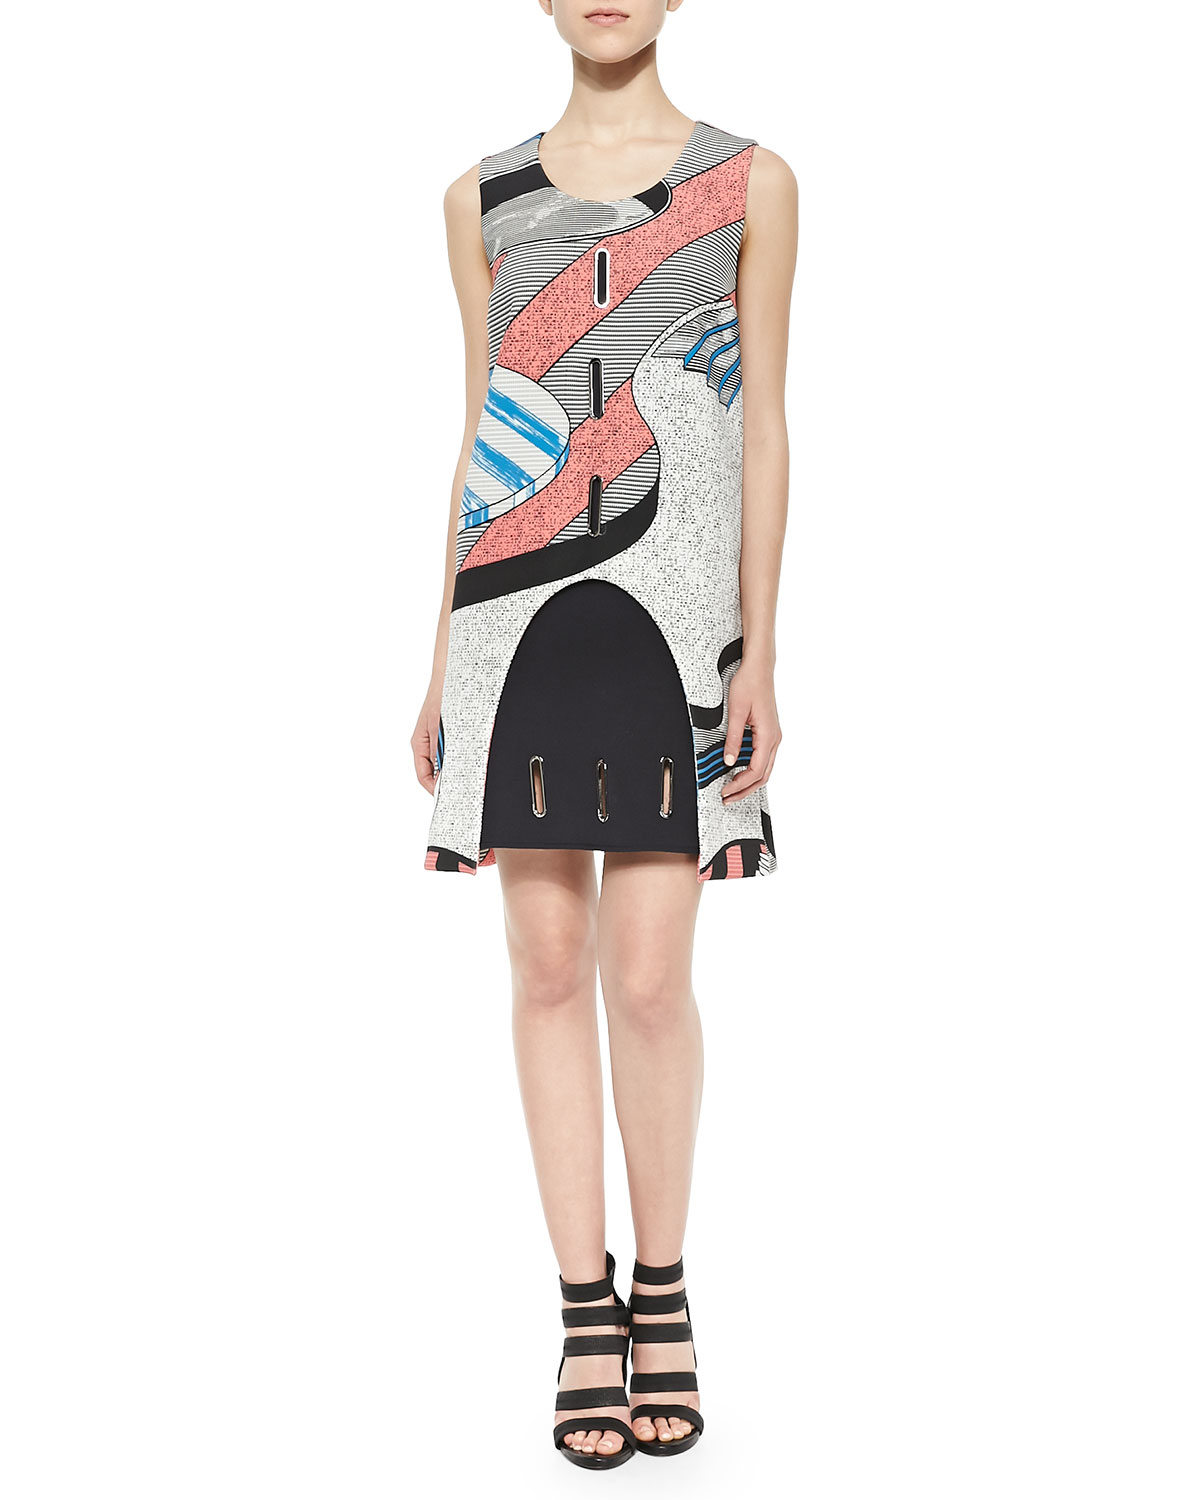 Opening Ceremony Fall 2015: Opening Ceremony Perspective Pools Cutout Grommet Dress